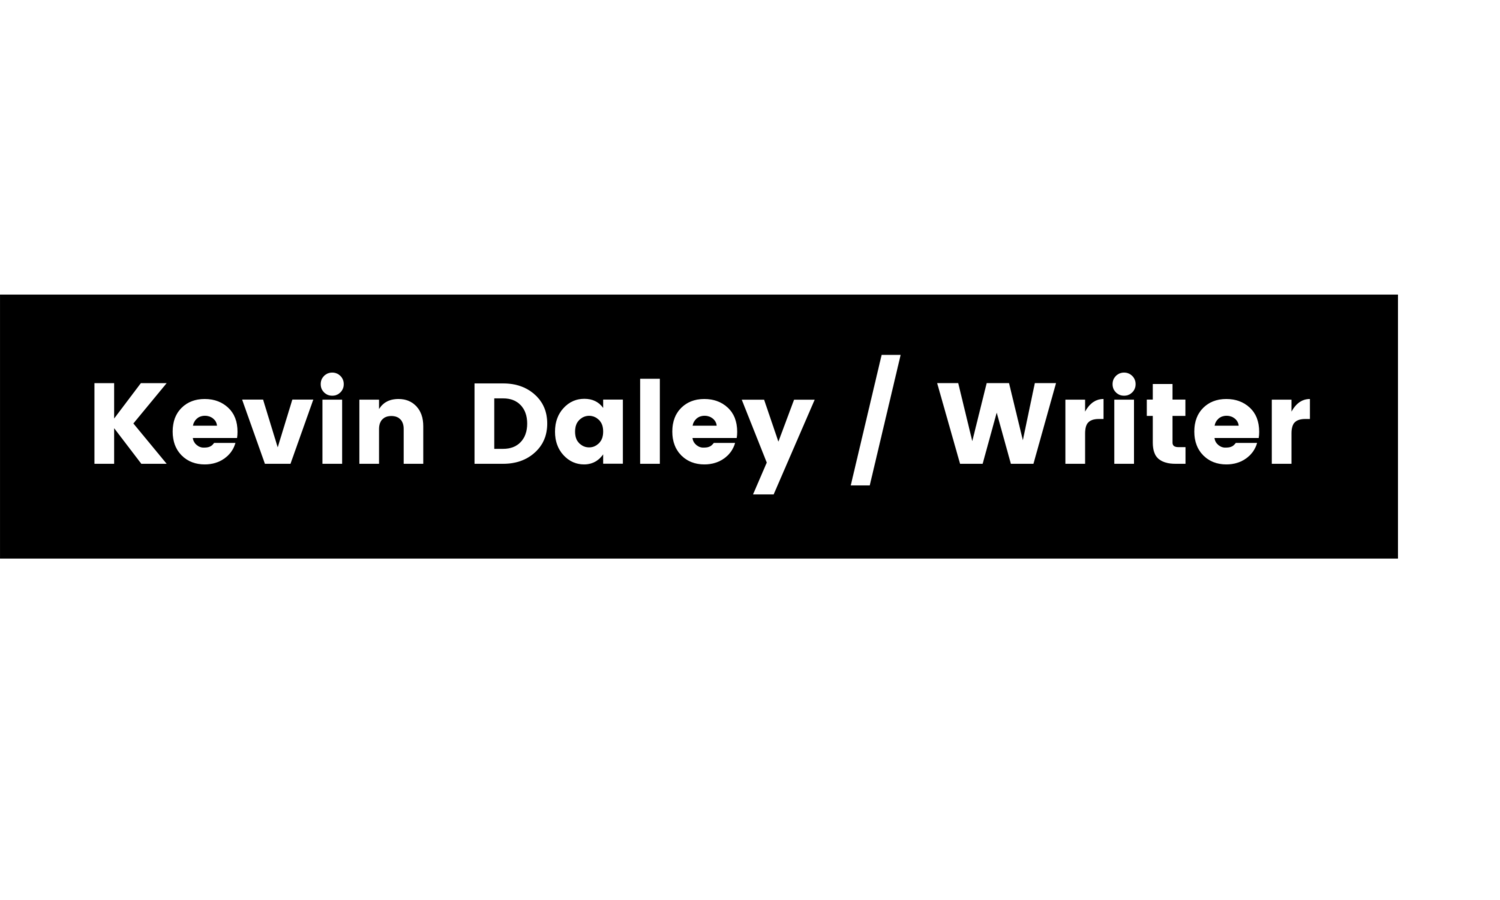 Kevin Daley